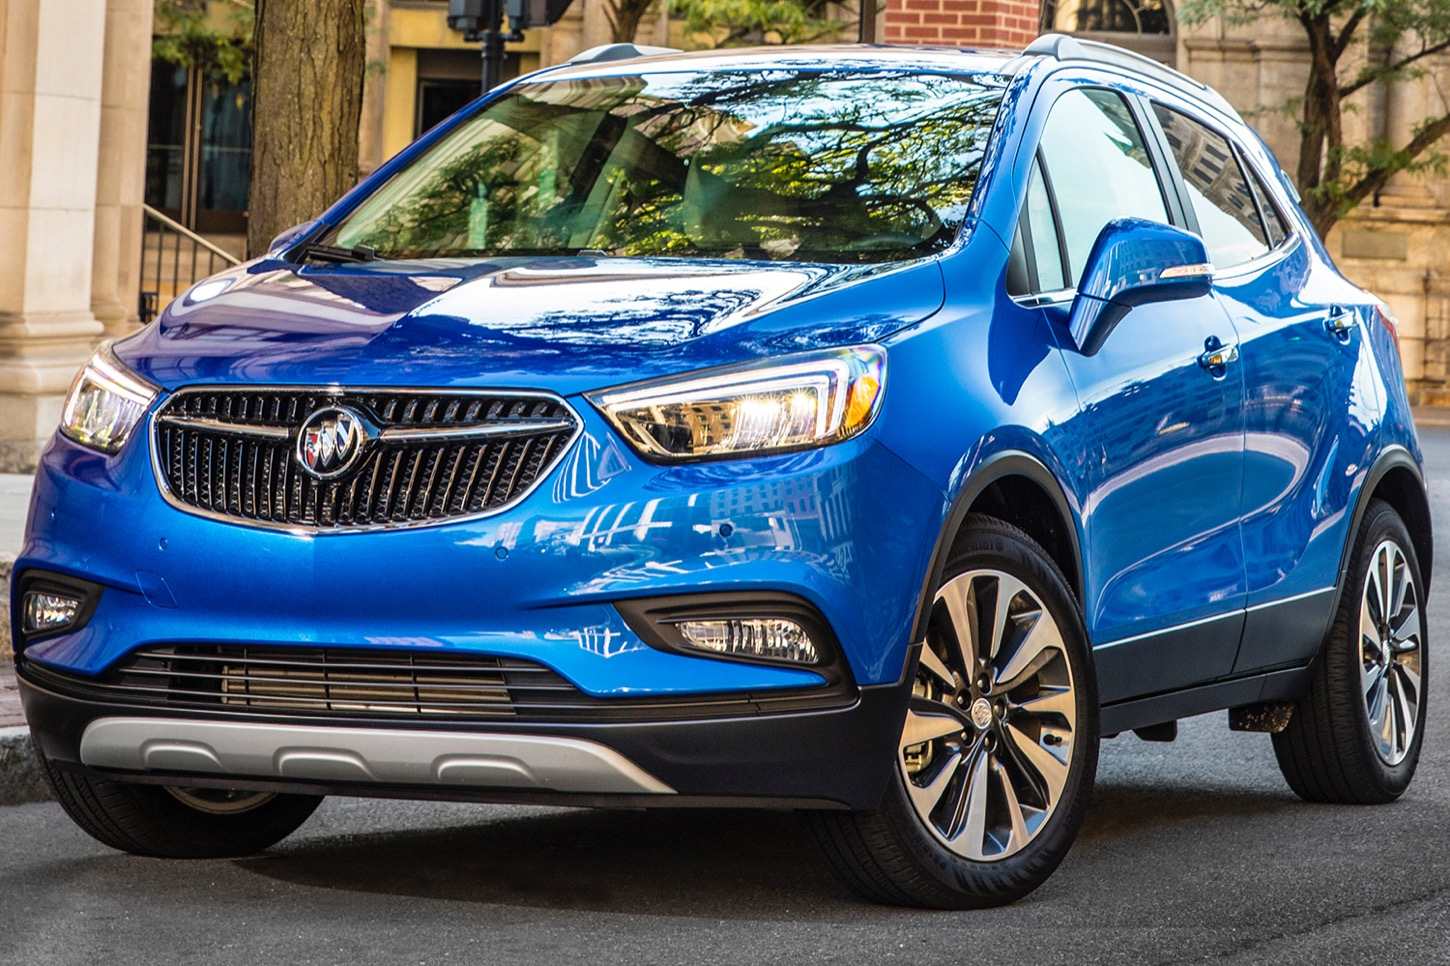 Buick Encore Discount Offers $4,500 Cash In May 2020 | Gm 2022 Buick Encore Msrp, Models, Manual